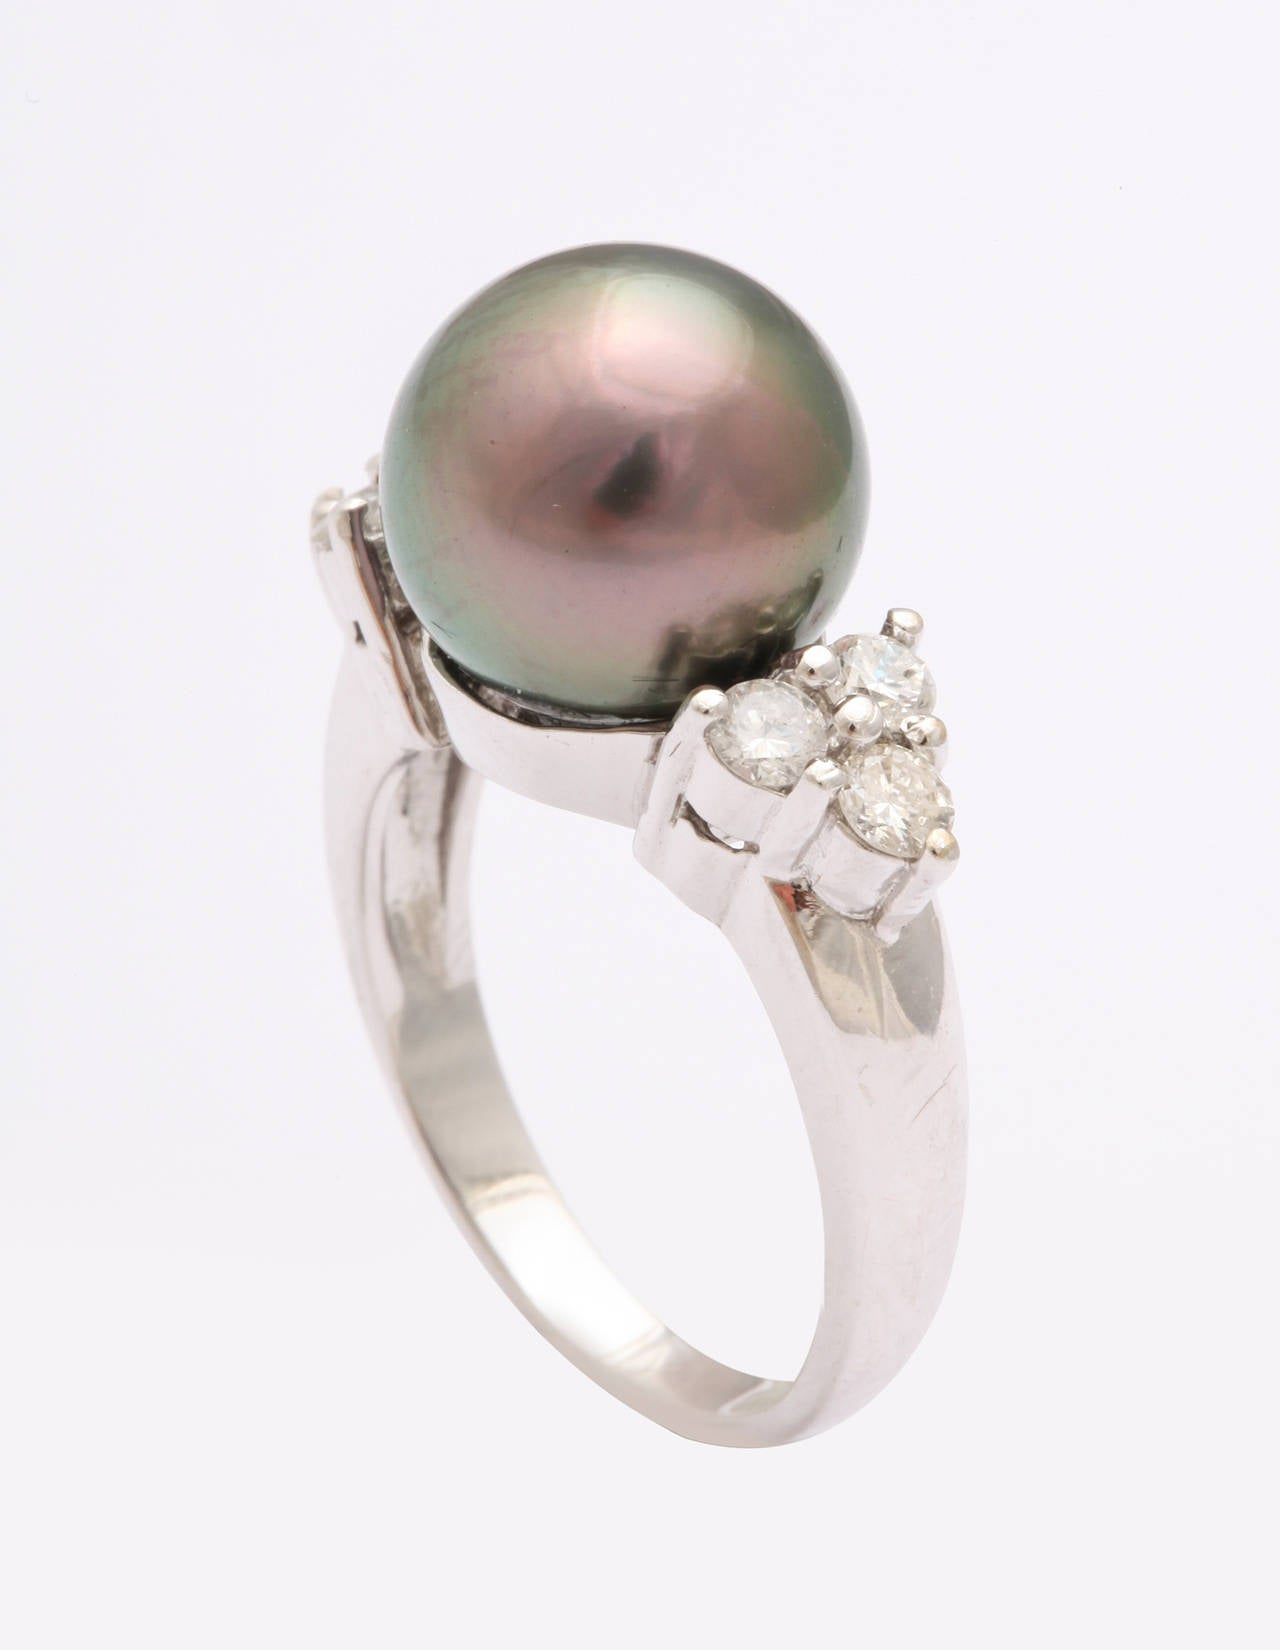 pearl rings bling s yly cute button jewelry engagement freshwater cultured sterling silver real ring cluster cz